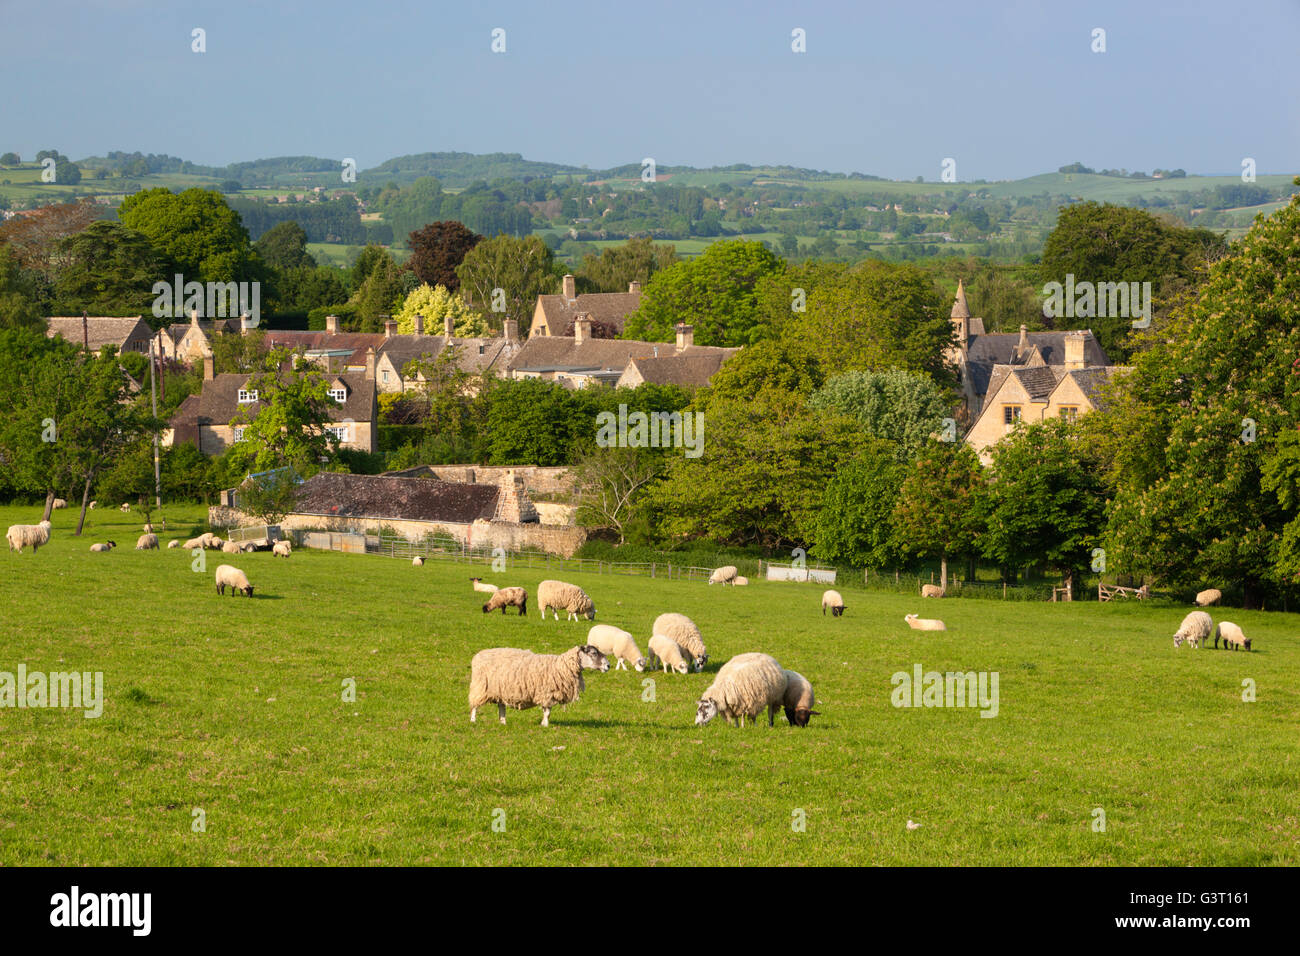 Grazing sheep with view over Cotswold village and landscape, Broad Campden, Cotswolds, Gloucestershire, England, - Stock Image